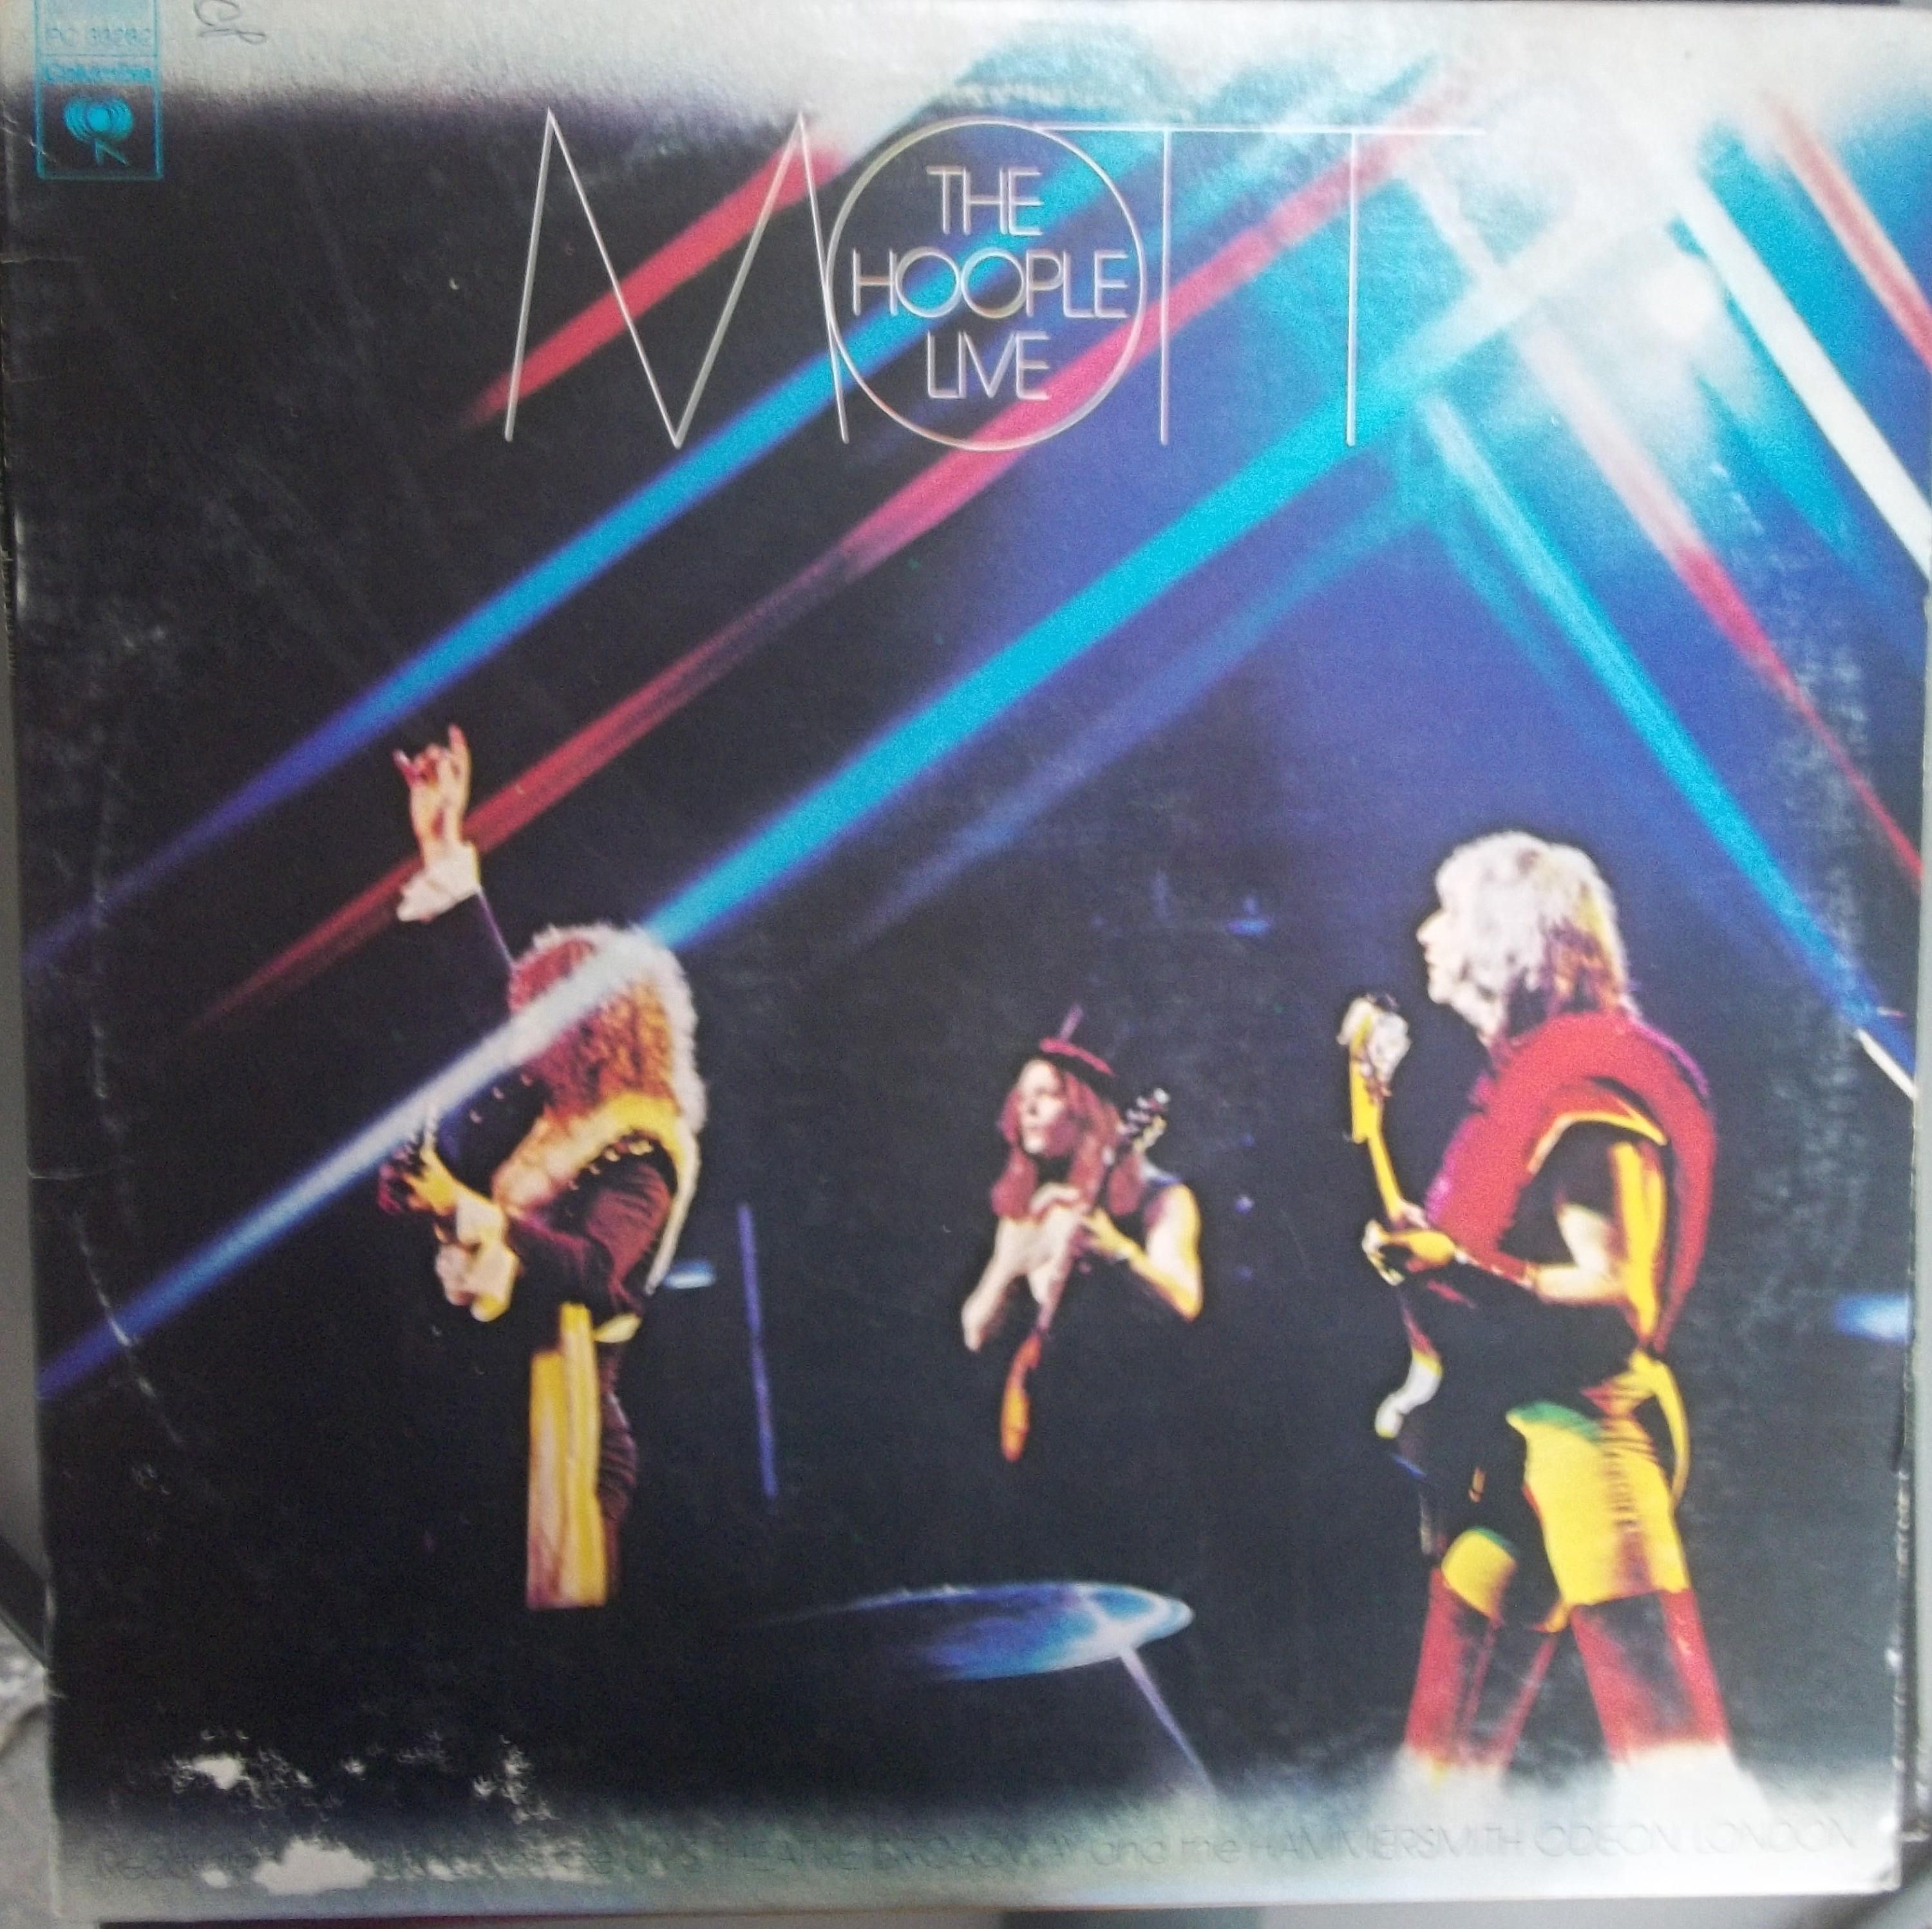 Mott The Hoople Live Vintage Record Album Vinyl Lp Classic Rock And Roll Music English Rock Band All The Young Dudes Live Concert Mott The Hoople Classic Album Covers Music Album